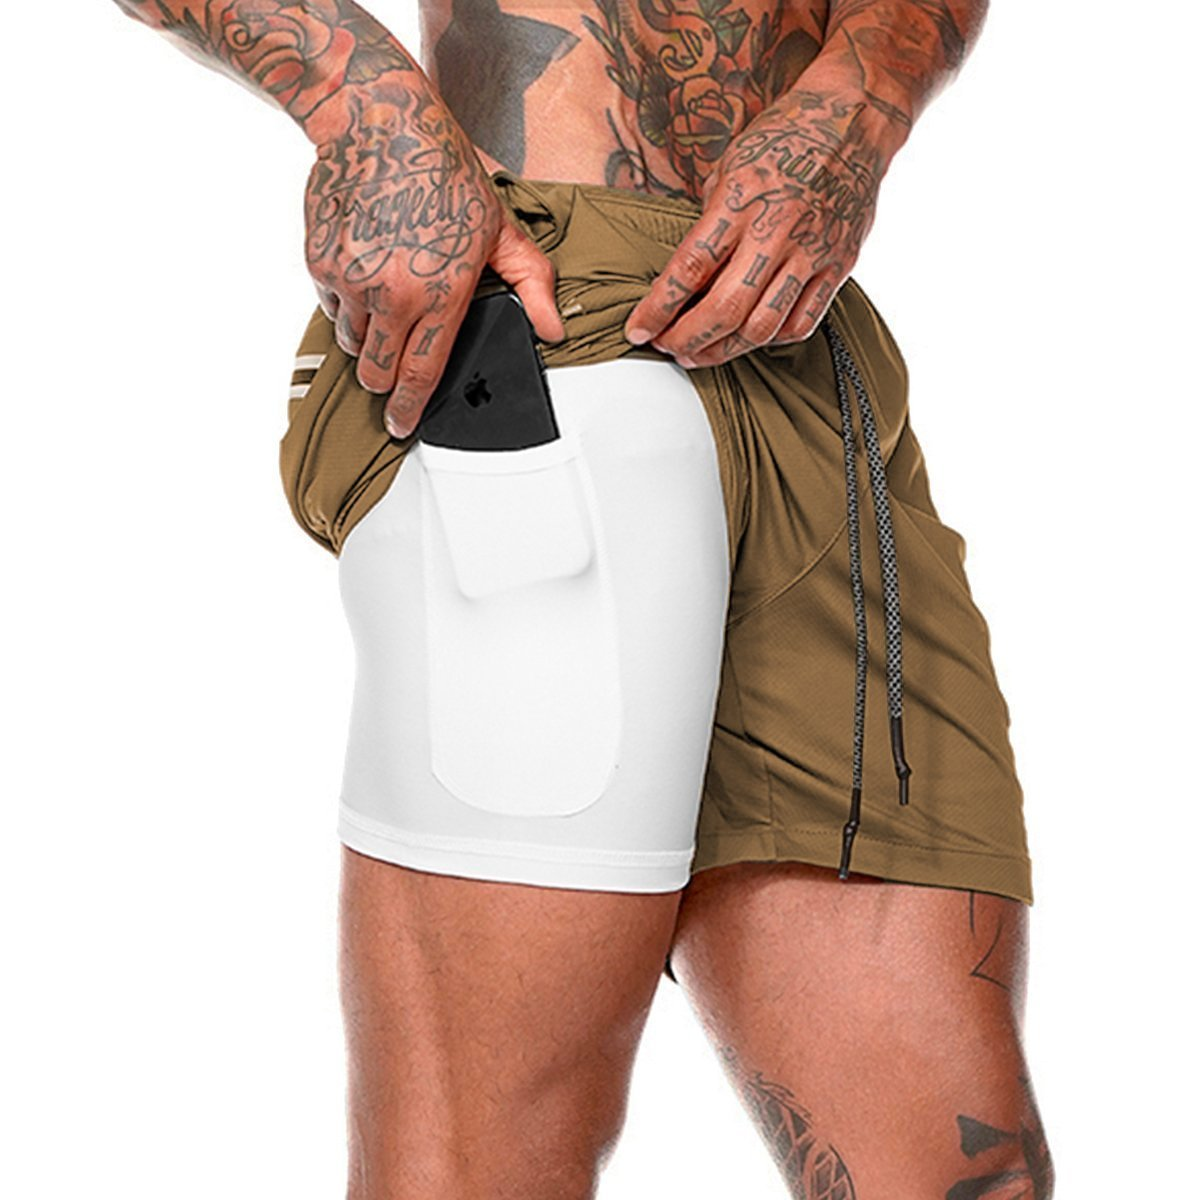 Men's Fitness Elastic Shorts-50% off